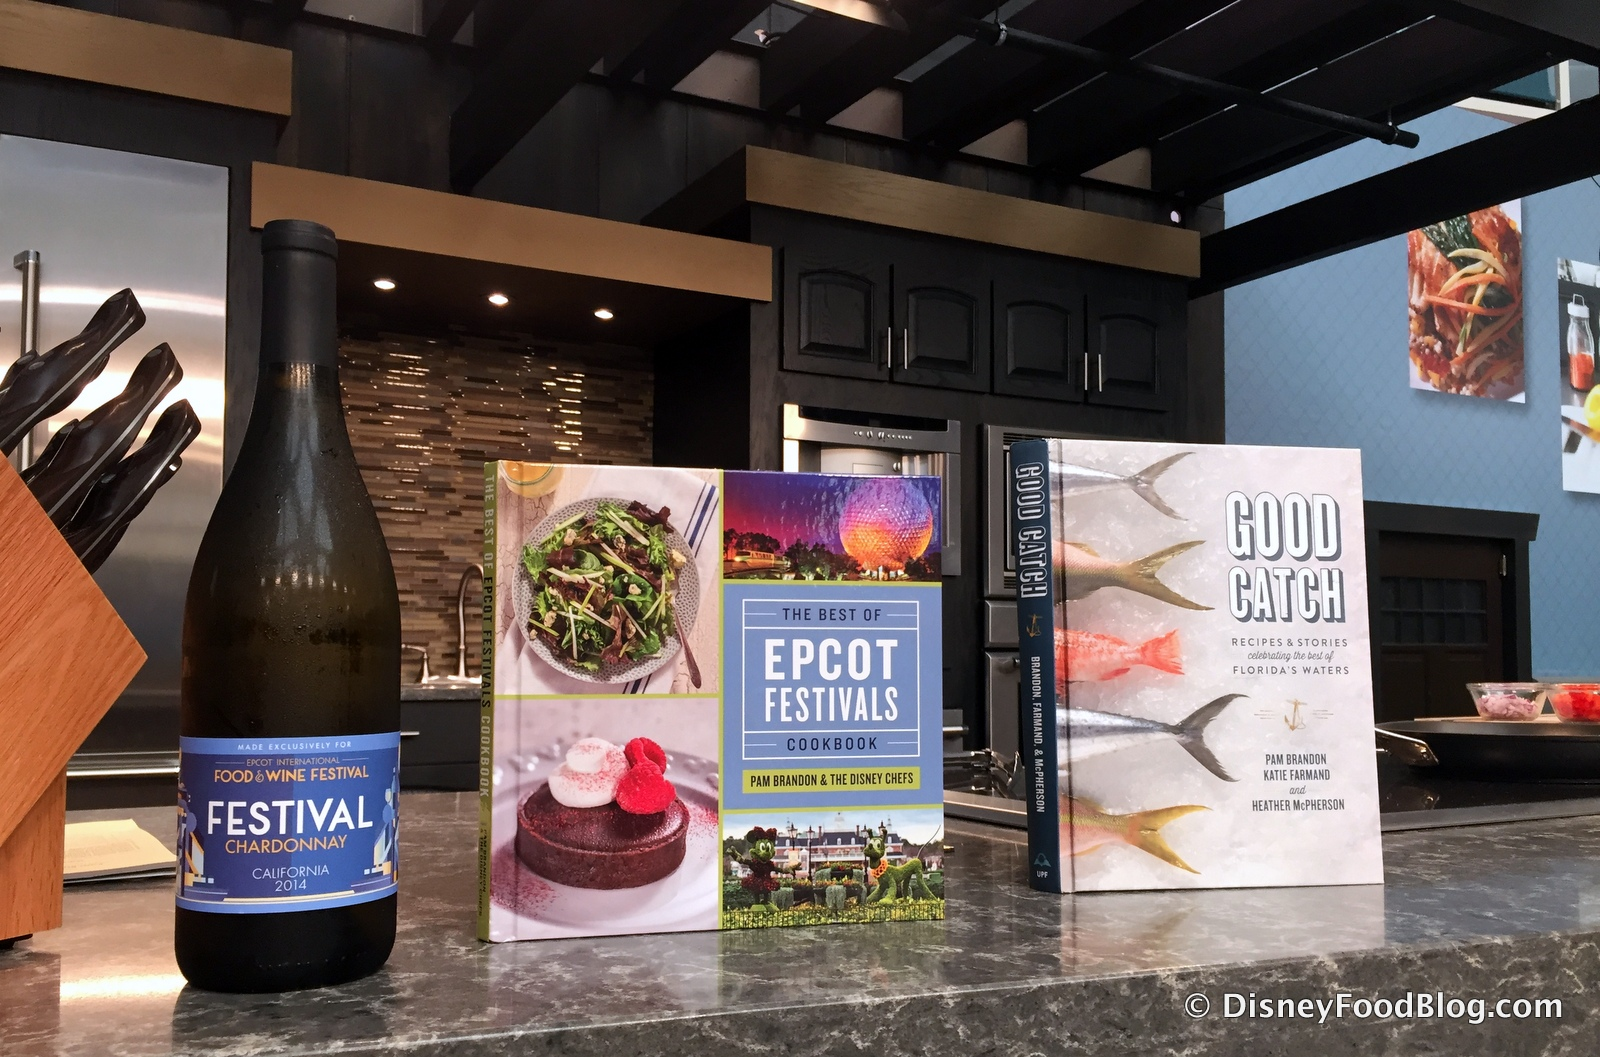 Epcot food and wine festival review lobster creole culinary demo festival chardonnay the epcot food and wine festival cookbook and good catch forumfinder Image collections